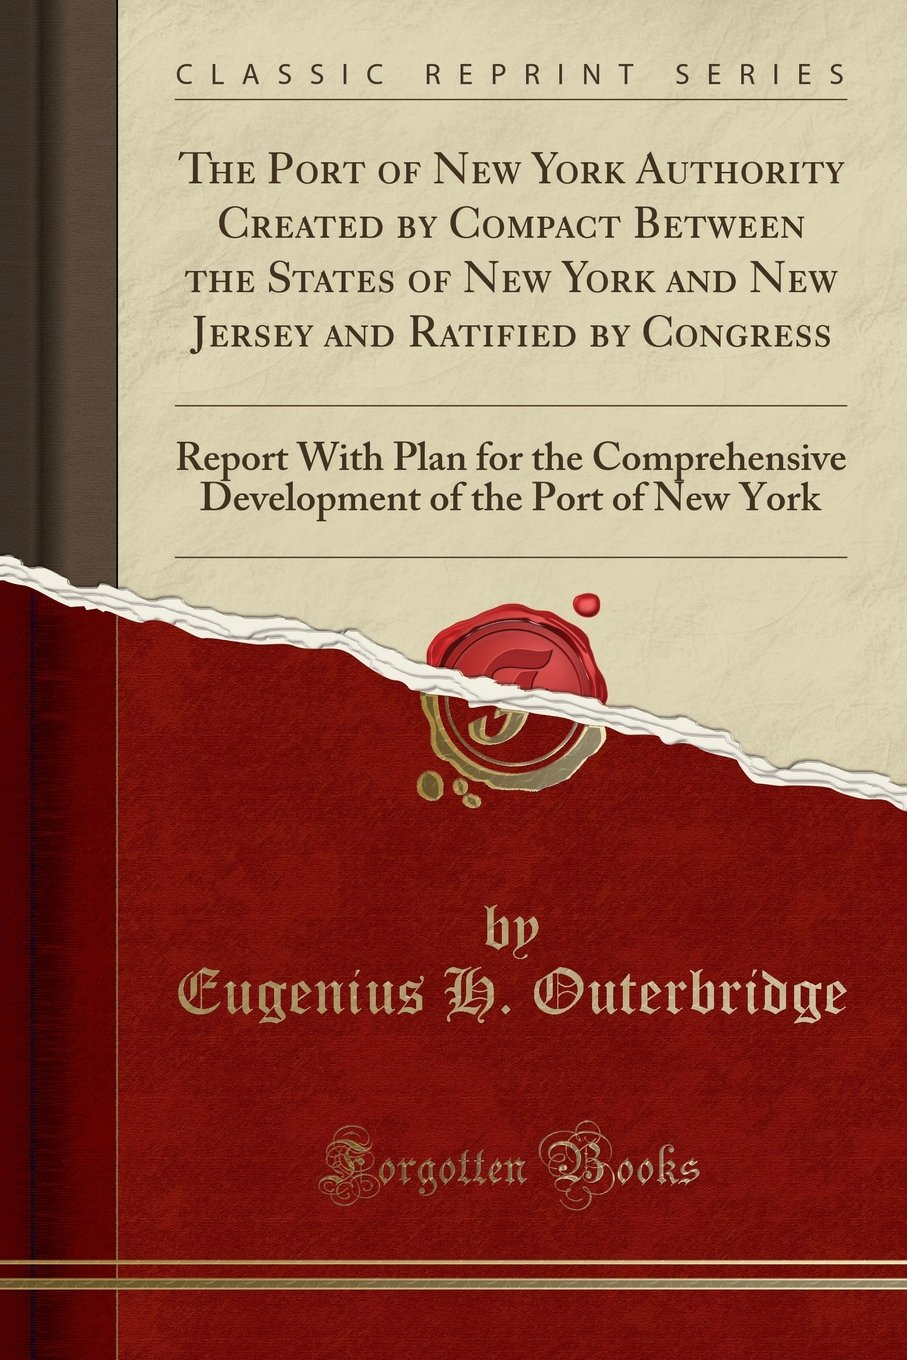 Read Online The Port of New York Authority Created by Compact Between the States of New York and New Jersey and Ratified by Congress: Report With Plan for the ... of the Port of New York (Classic Reprint) ebook